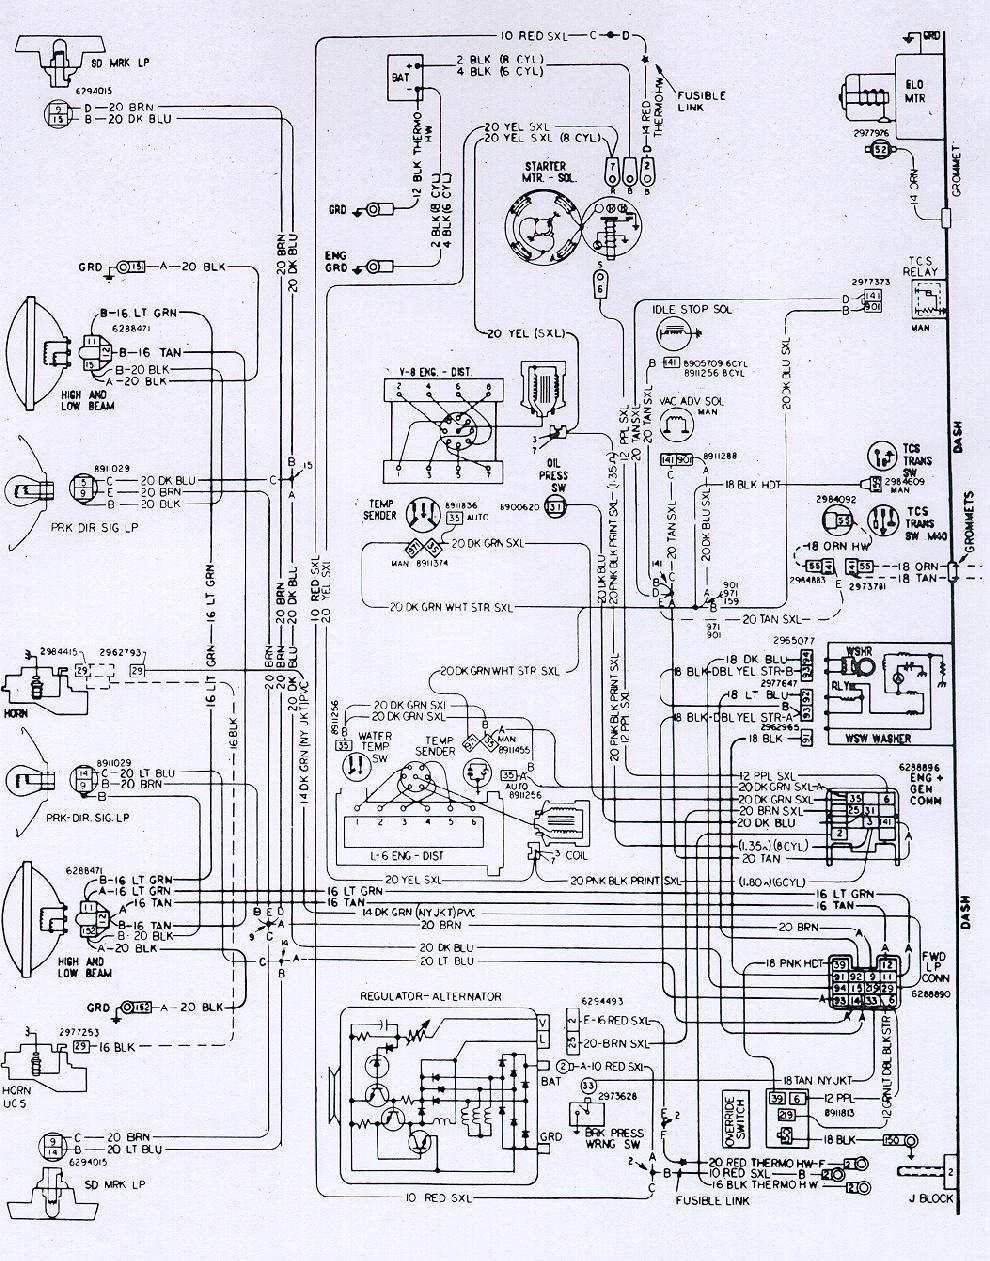 medium resolution of 67 camaro fuse box diagram wiring schematic diagram rh theodocle fion com 85 pontiac fiero fuse